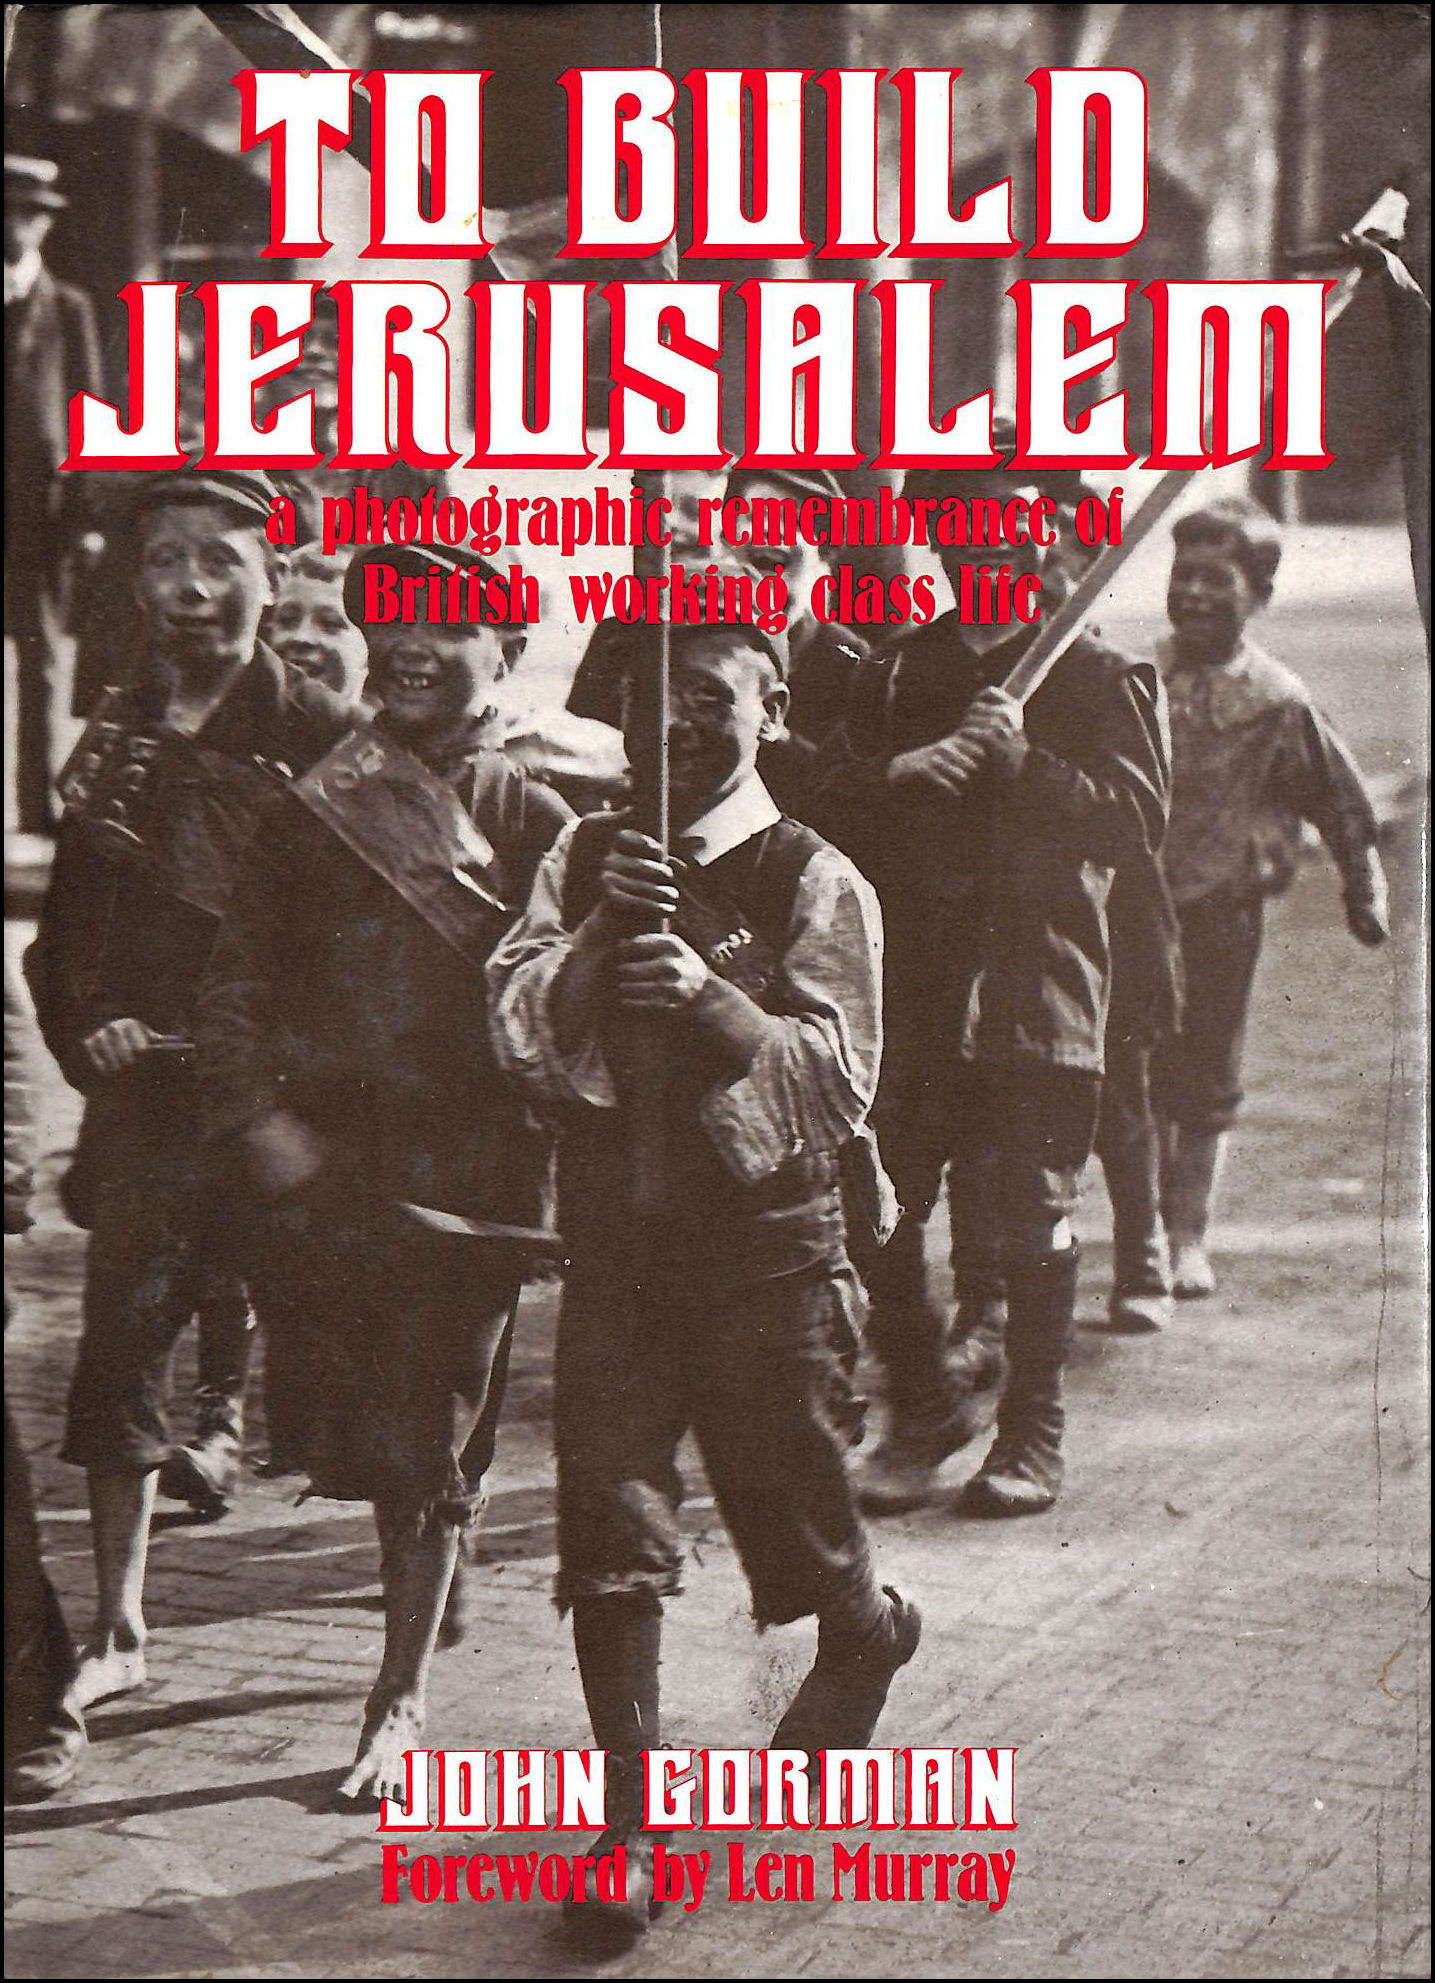 Image for To Build Jerusalem: Photographic Remembrance of British Working Class Life, 1875-1950